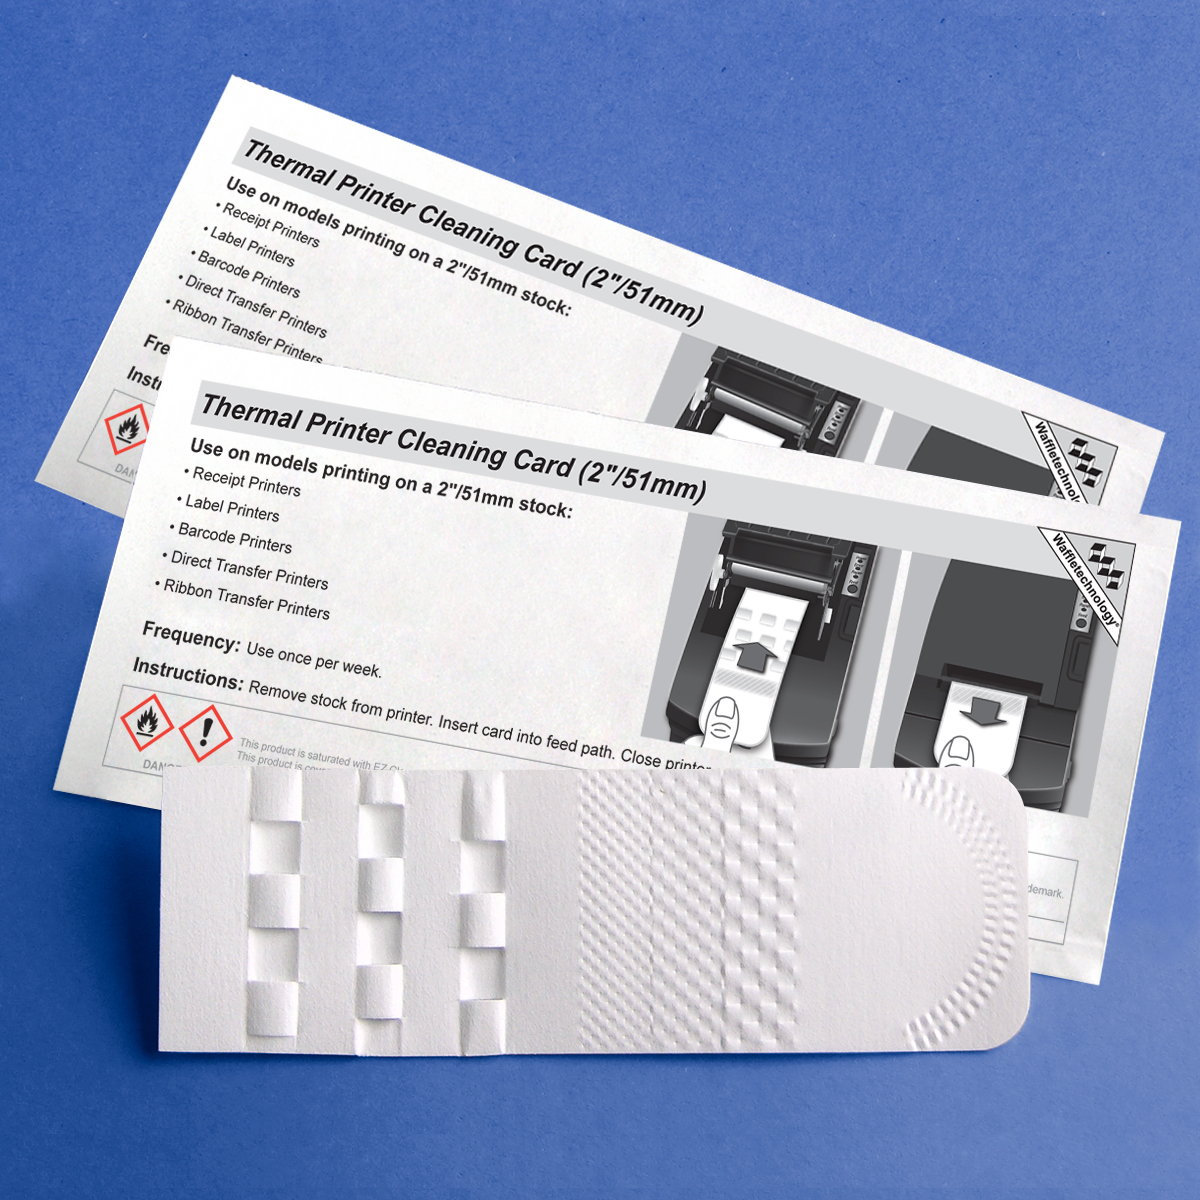 Thermal Printer Cleaning Card mit Waffletechnology ® (2 In / 51mm)